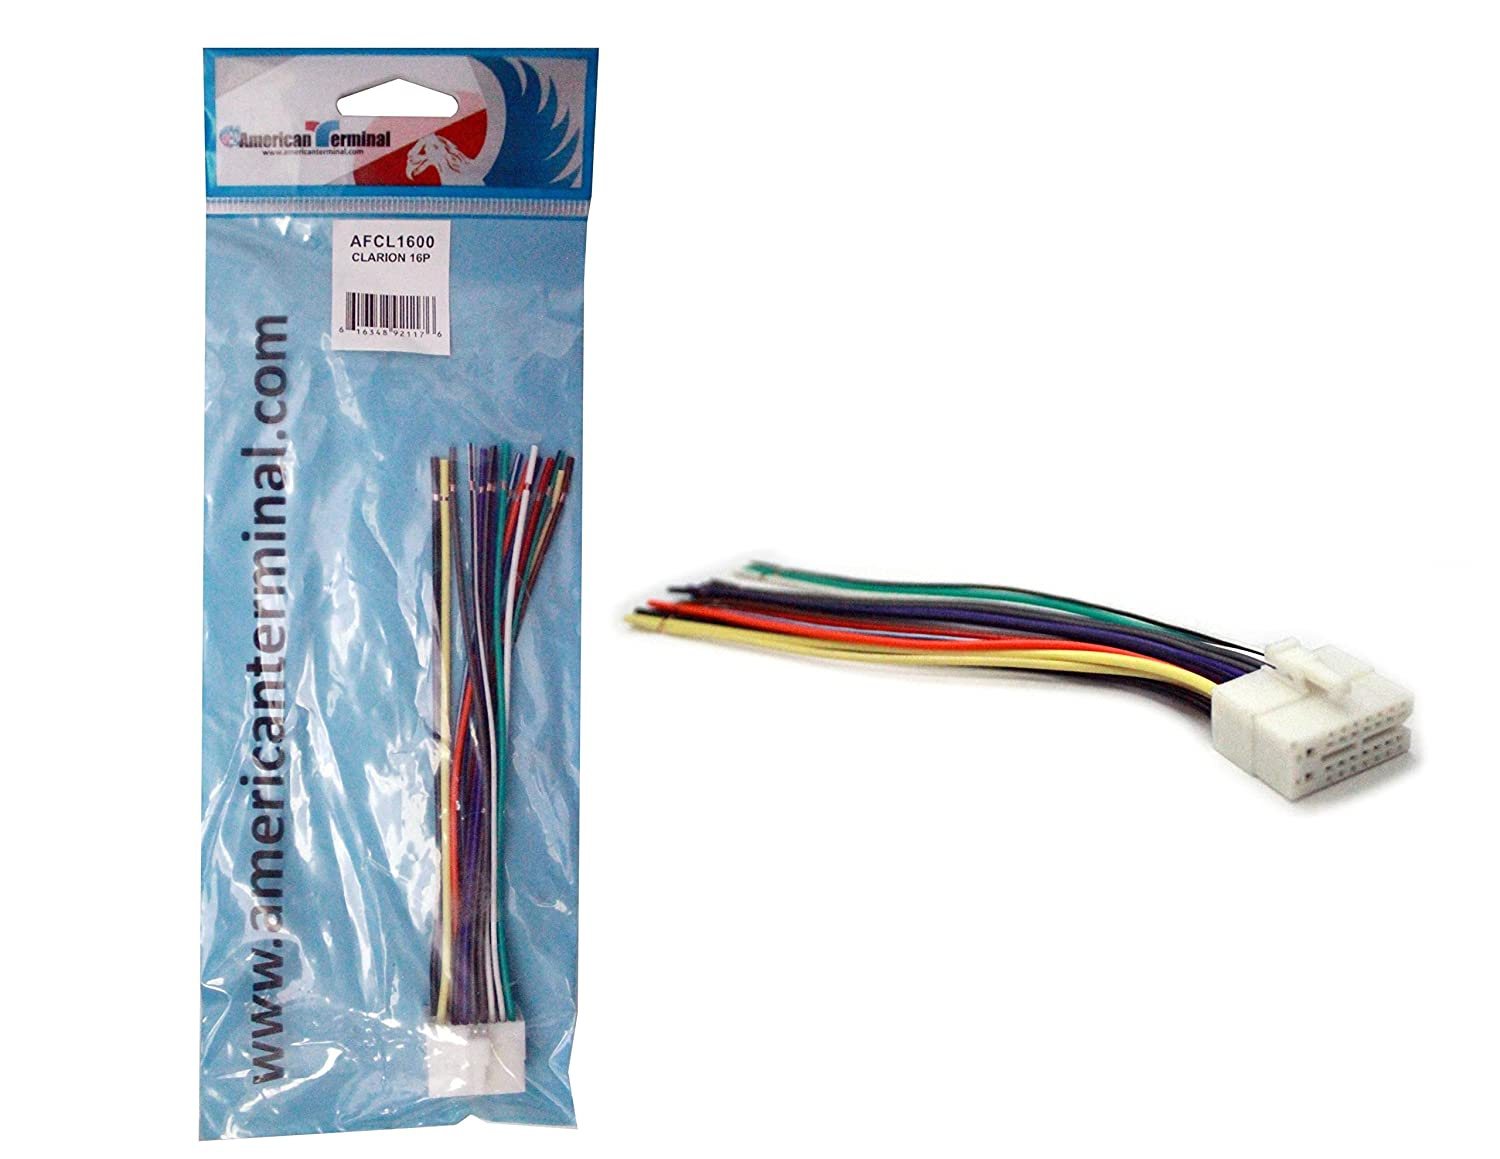 Clarion Cz309 Wiring Harness Free Download 16 Pin Amazon Com American Terminal Afcl1600 Universal Plug For Dxz735mp Code At